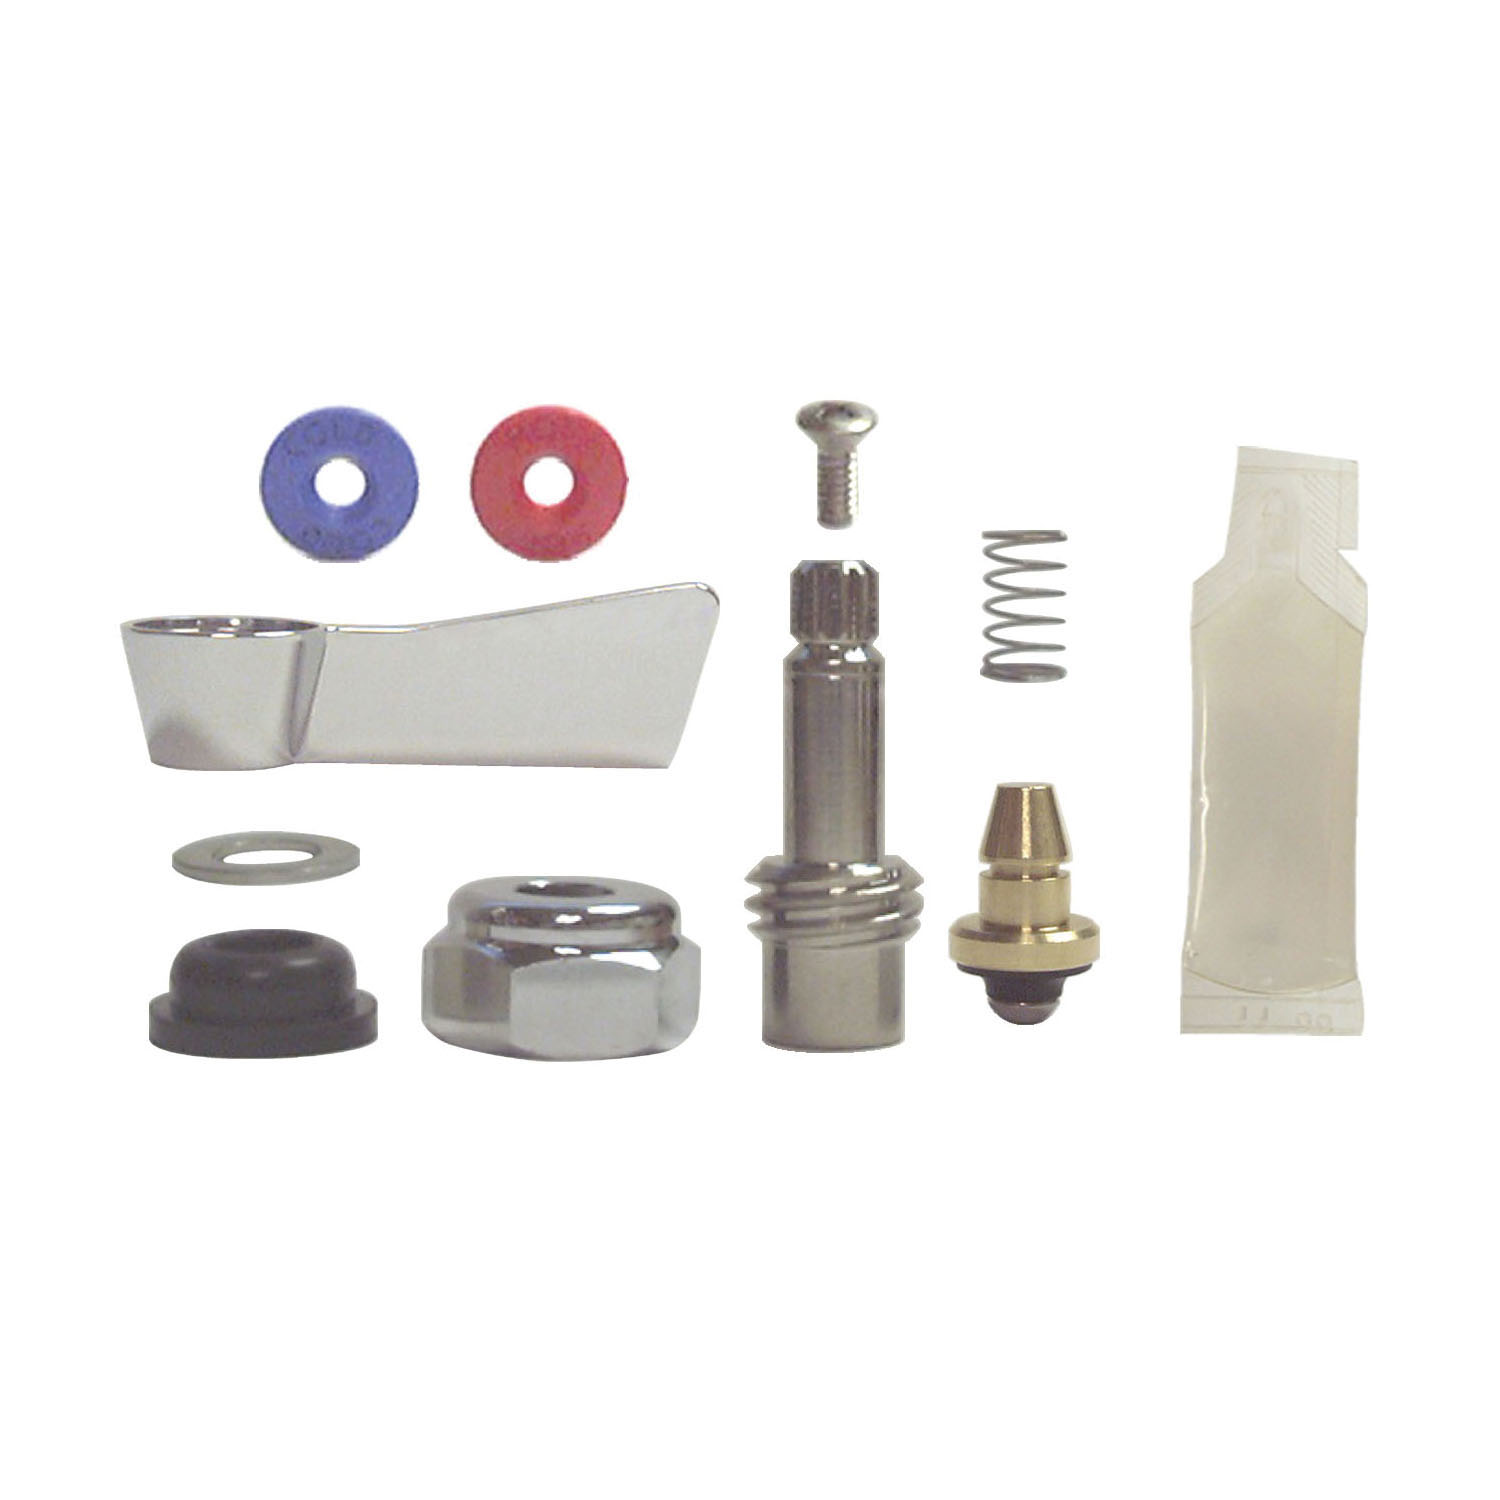 Fisher 54518 Faucet Stem Repair Kit, Stainless Steel